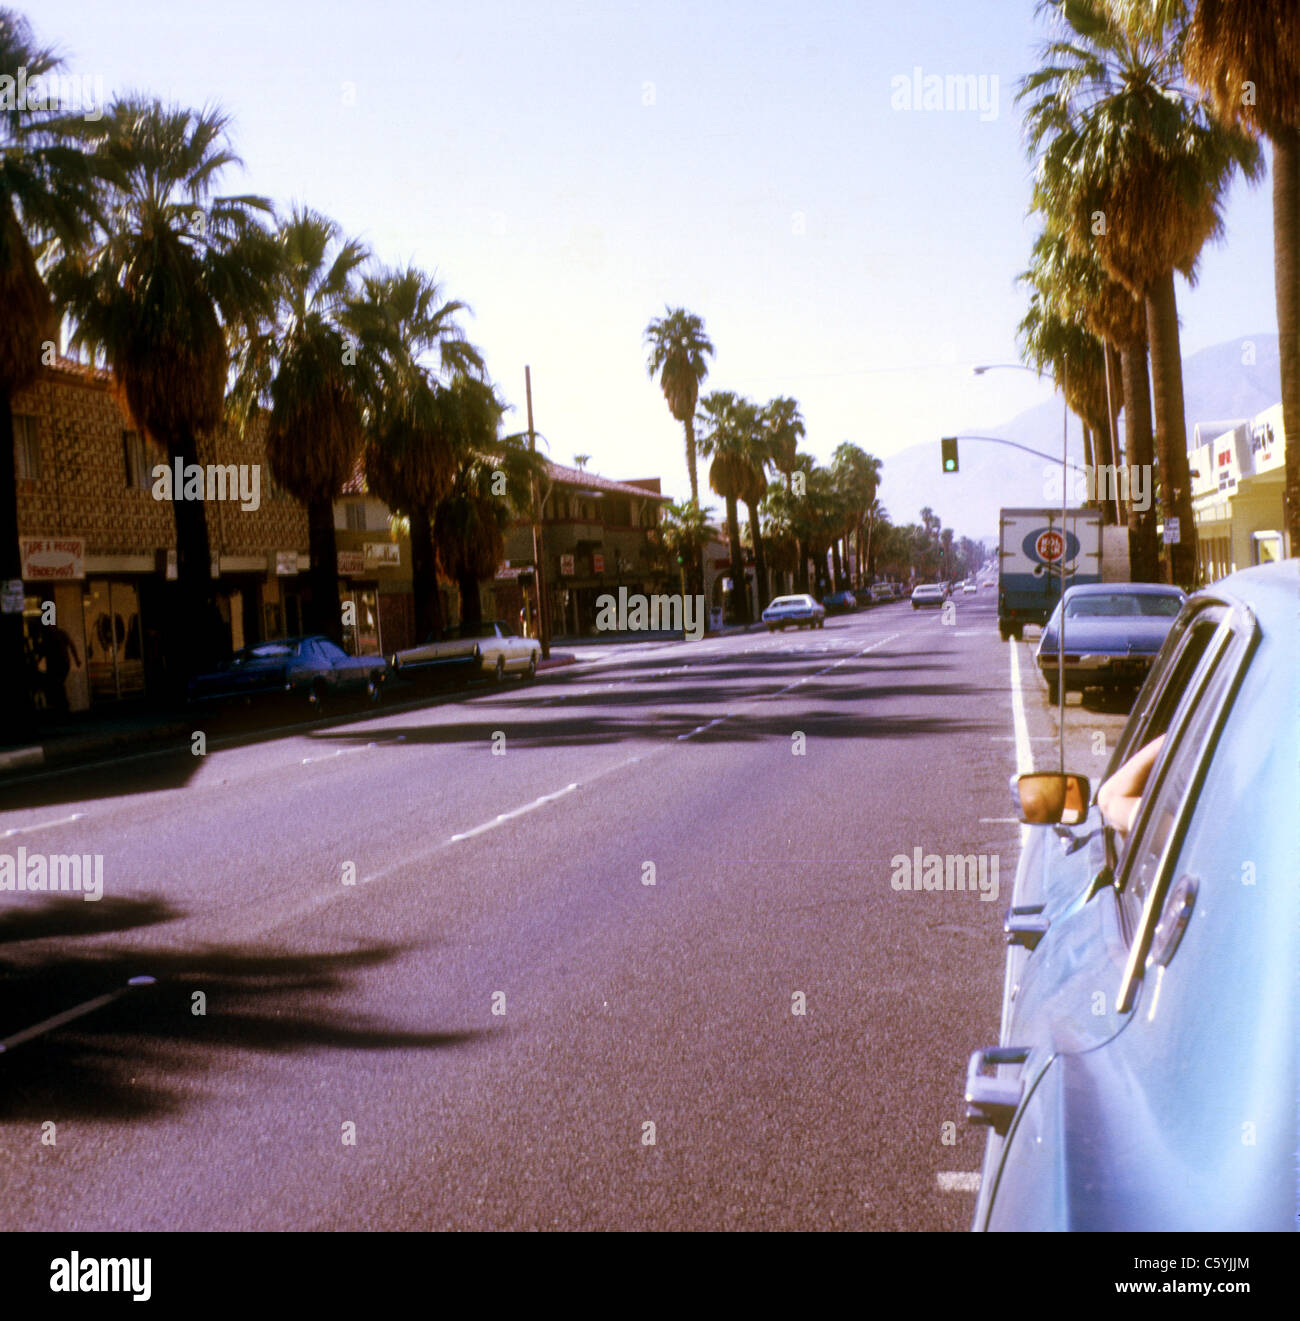 Palm tree lined street California 1973 - Stock Image